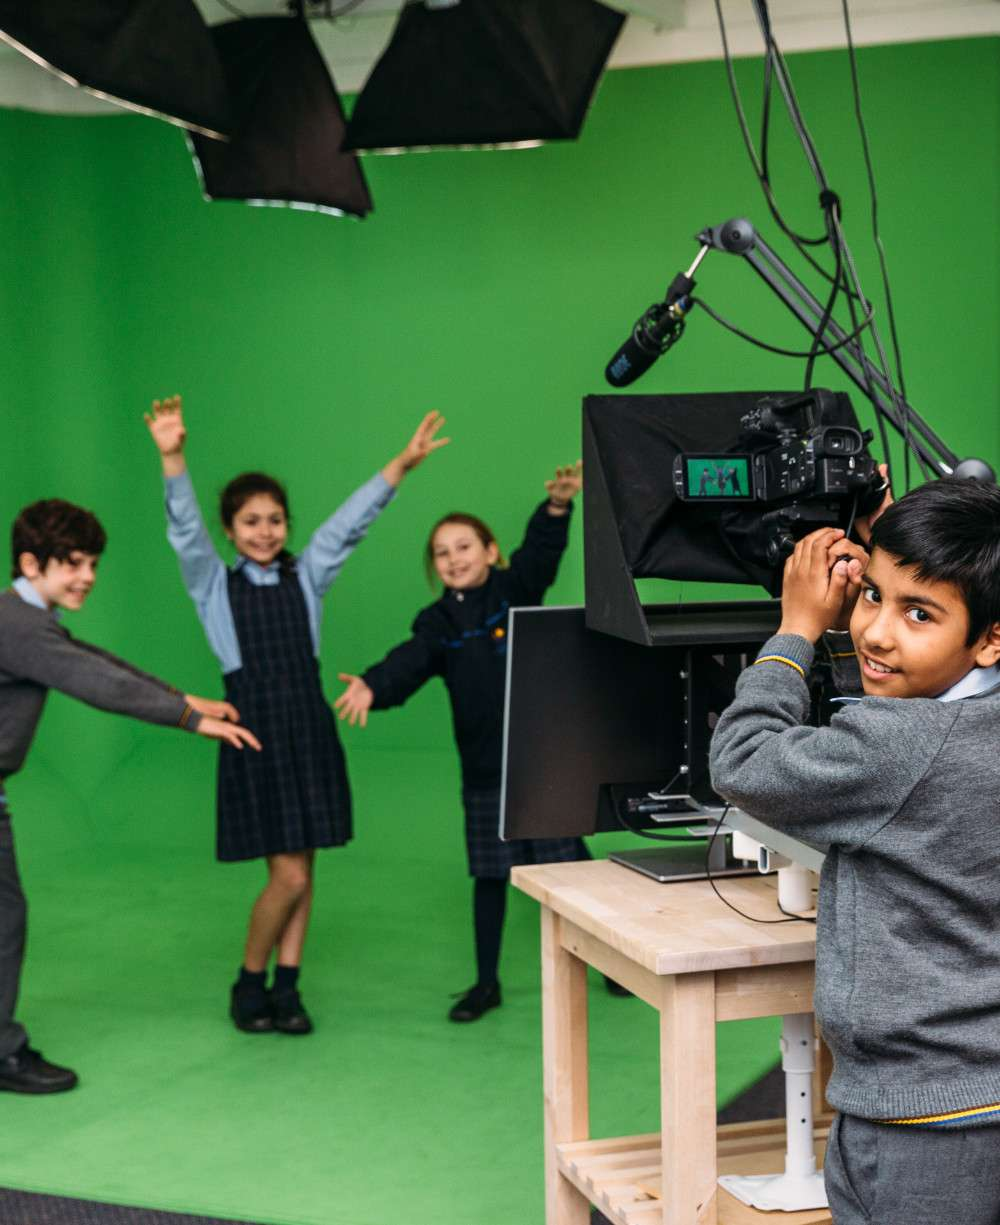 Students filming on a green screen